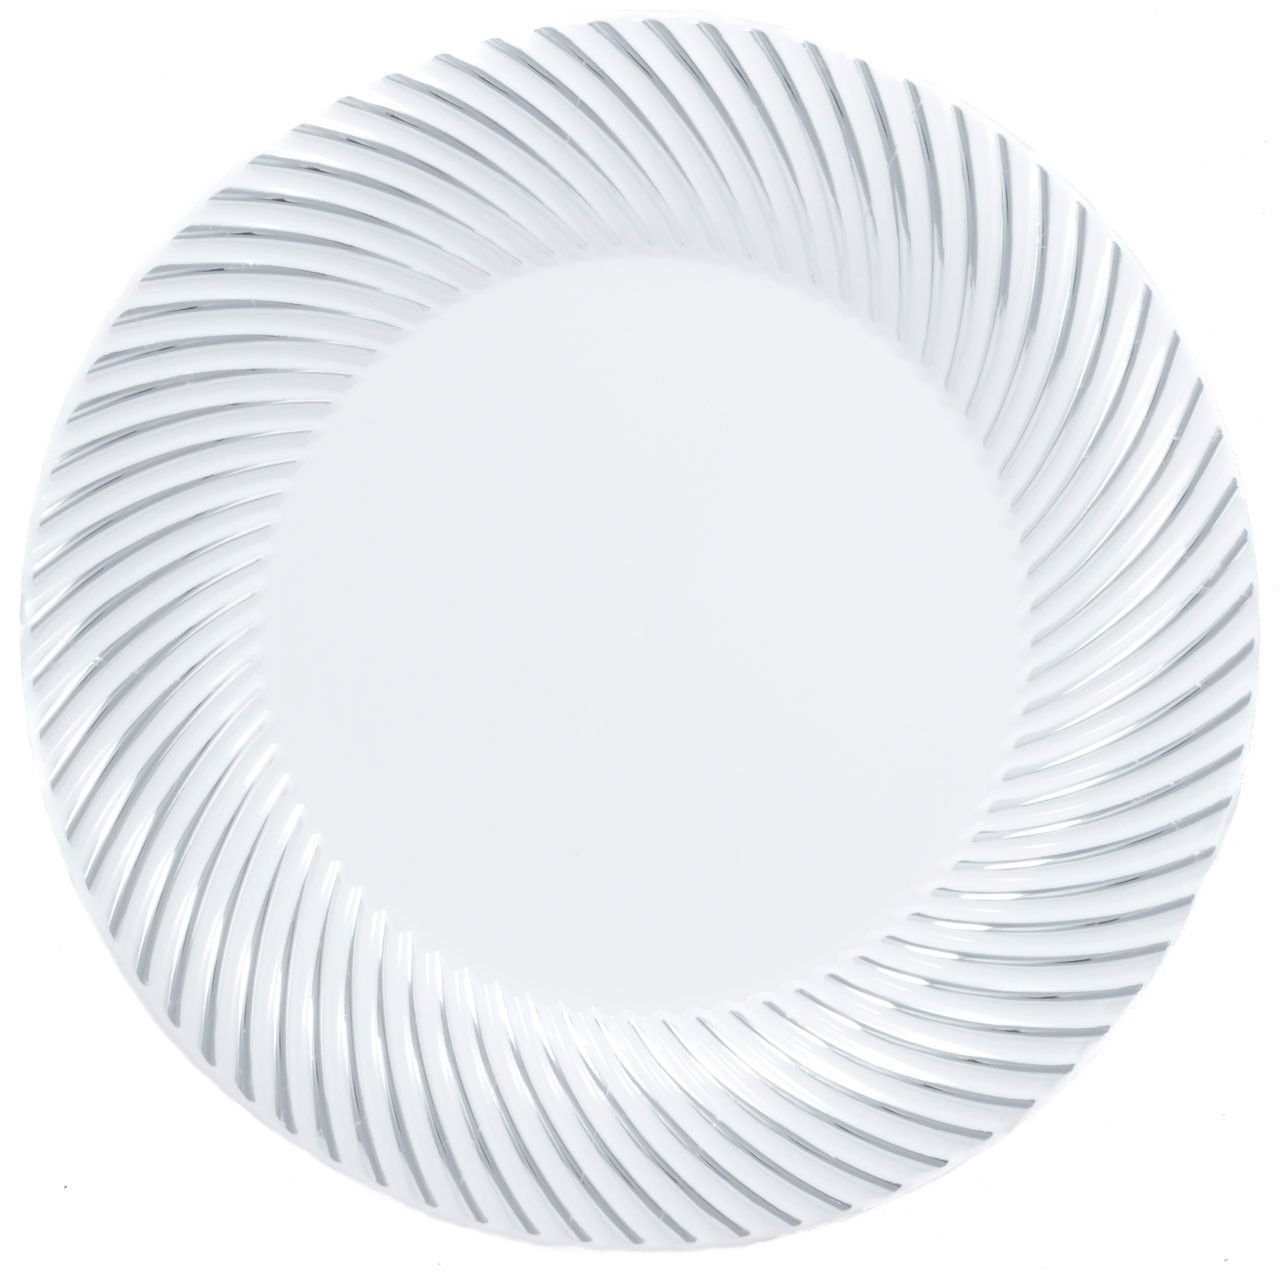 Plastic 10 1/4 Inch White Dinner Plate with Silver Rim/Case of 120  sc 1 st  Pinterest & Plastic 10 1/4 Inch White Dinner Plate with Silver Rim/Case of 120 ...